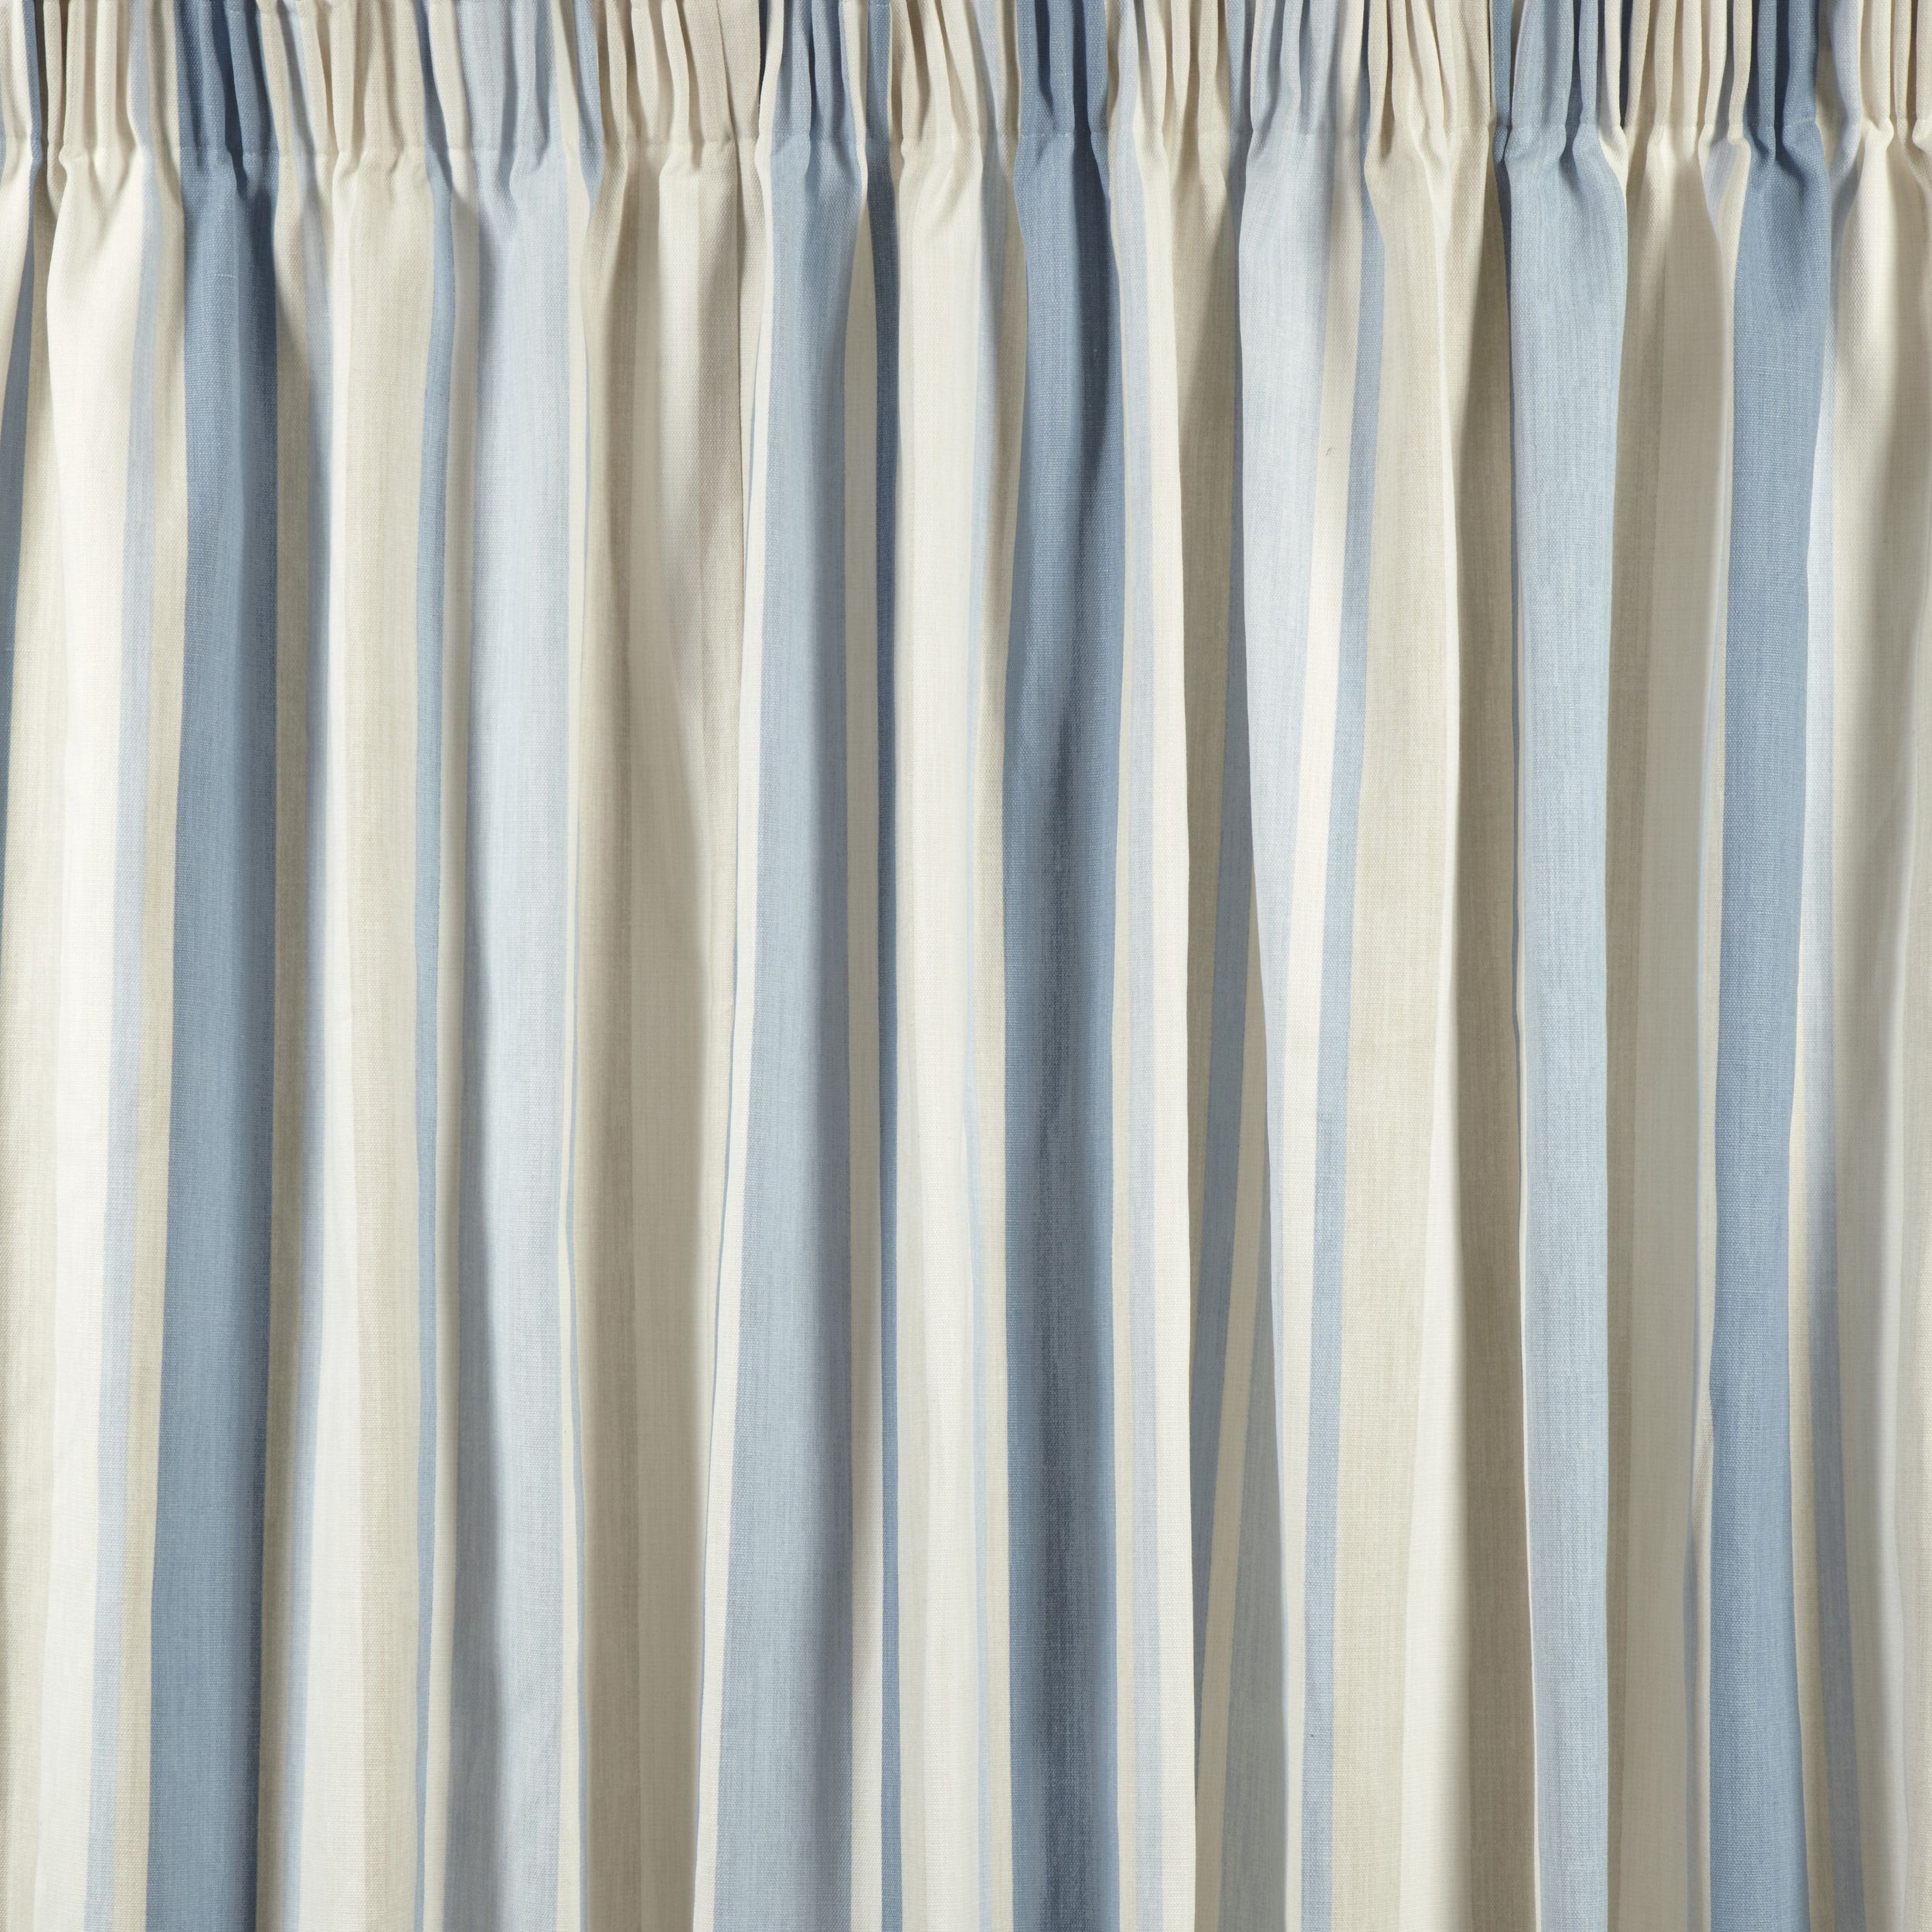 shower charles of designer curtains ready made curtain readyade luxury ideas showeradeshower stupendous buy full online size images julian drapes and curtainsready